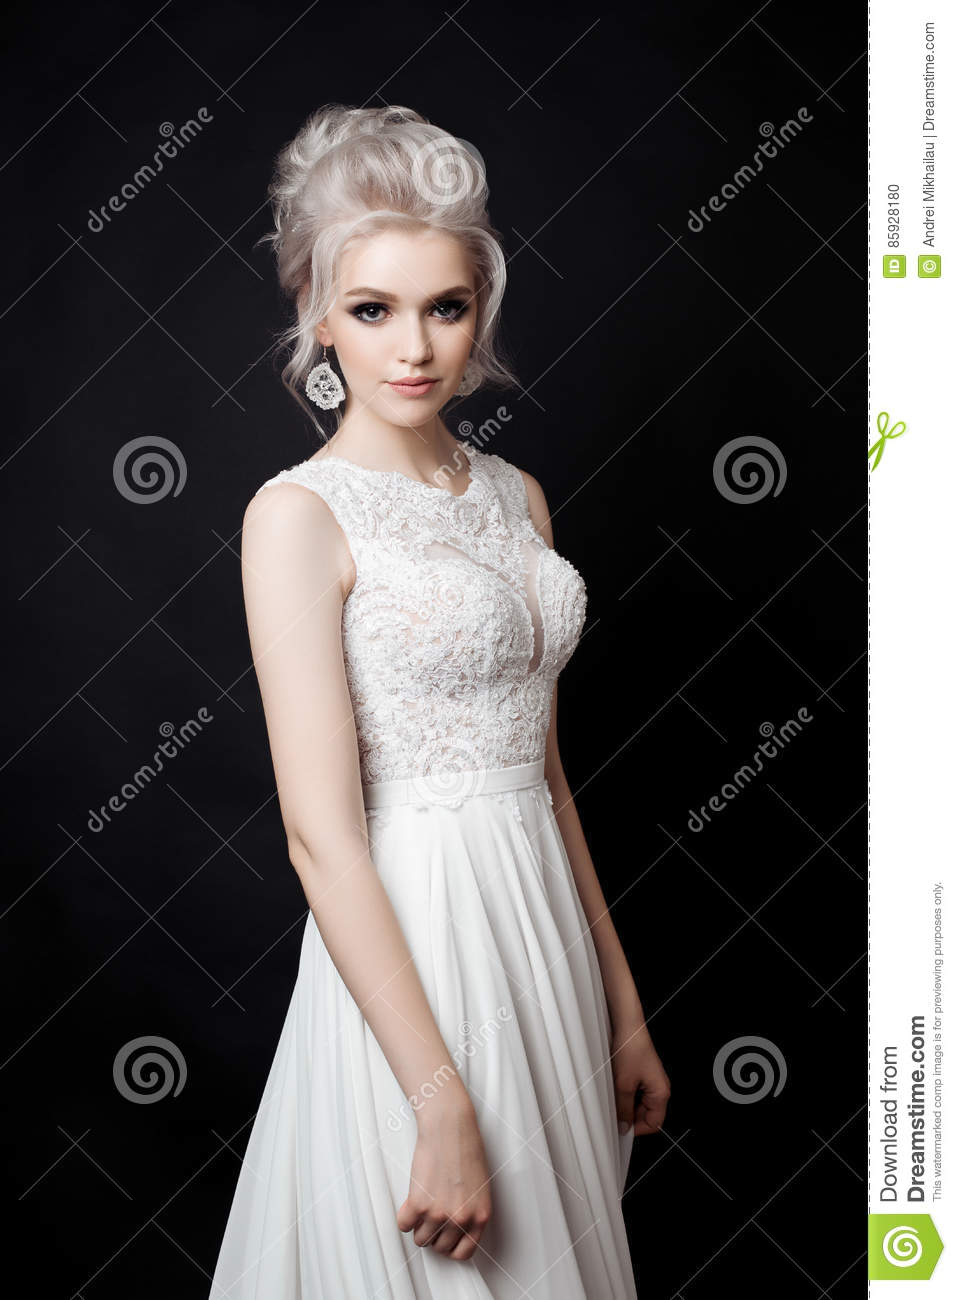 Lace Wedding Dress with Earrings